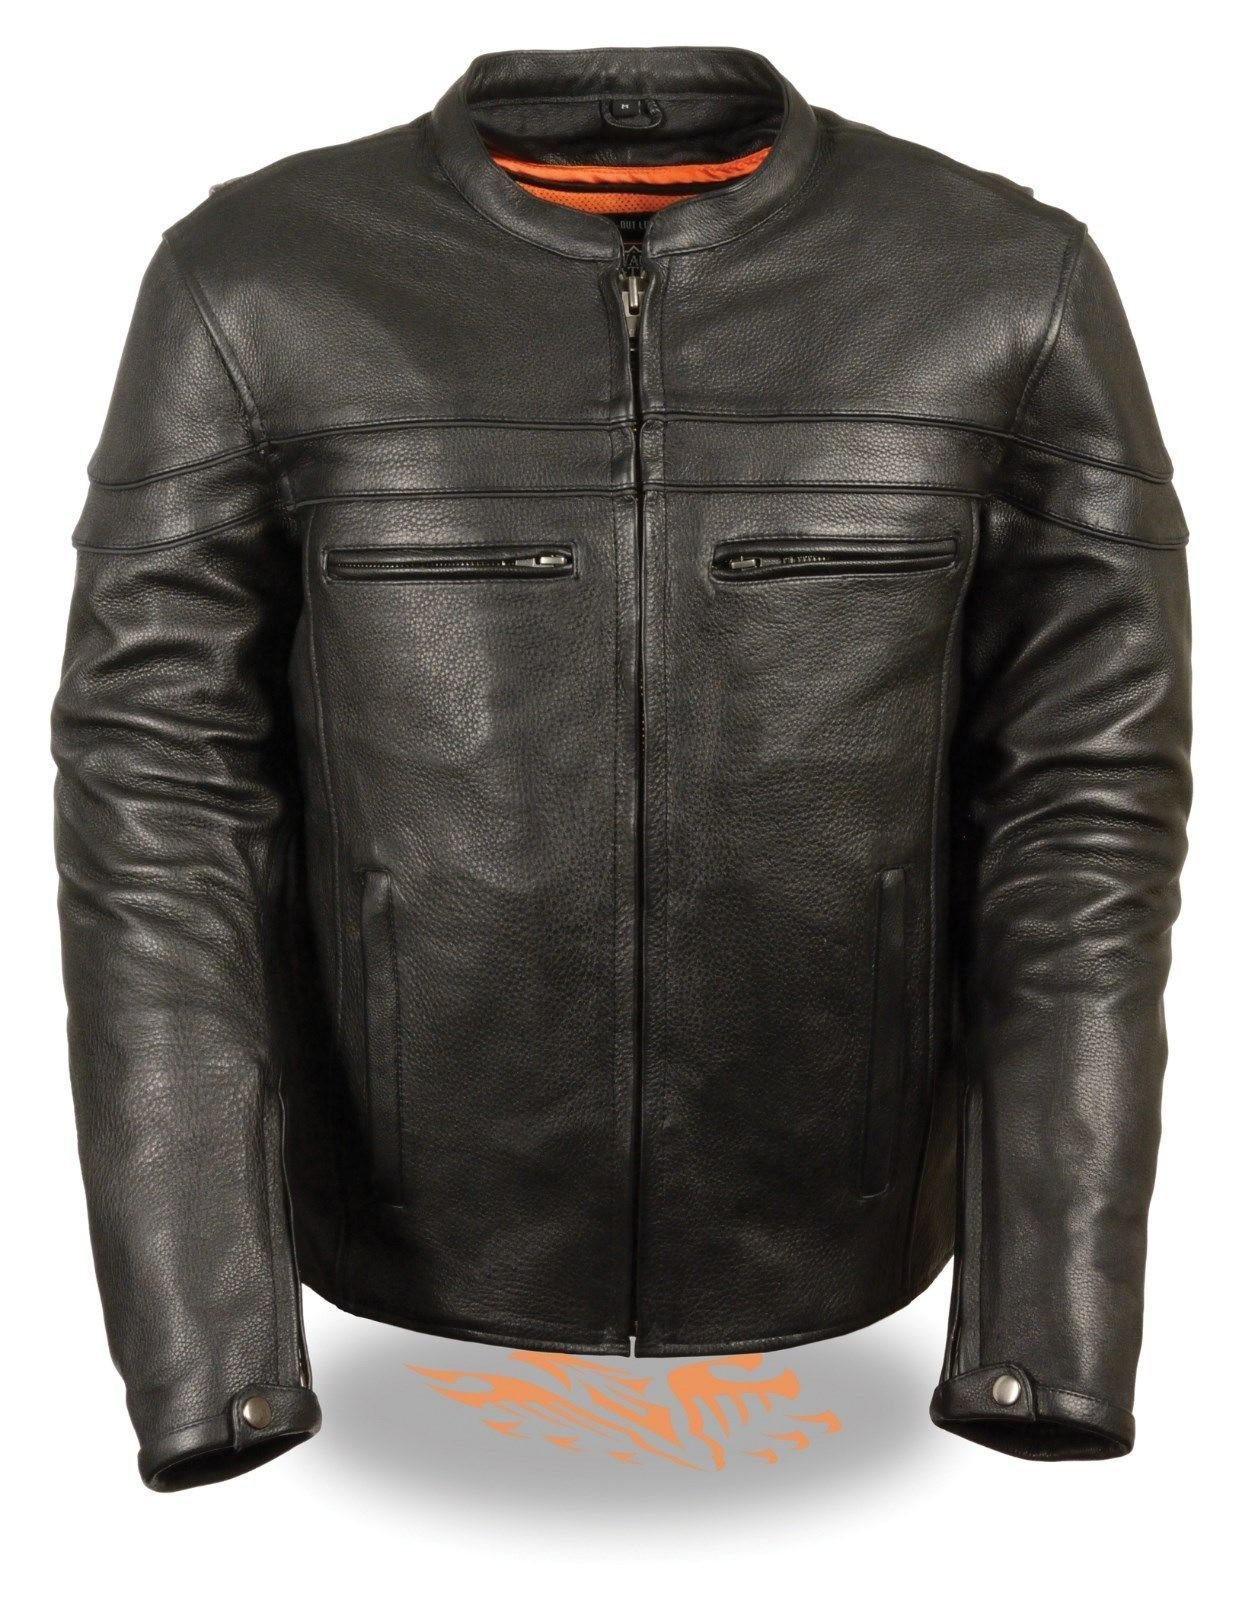 Milwaukee MEN'S MOTORCYCLE REFLECTIVE SCOOTER NAKED COW LEATHER JACKET W/GUN POCKET VENTS (2XL Regular)